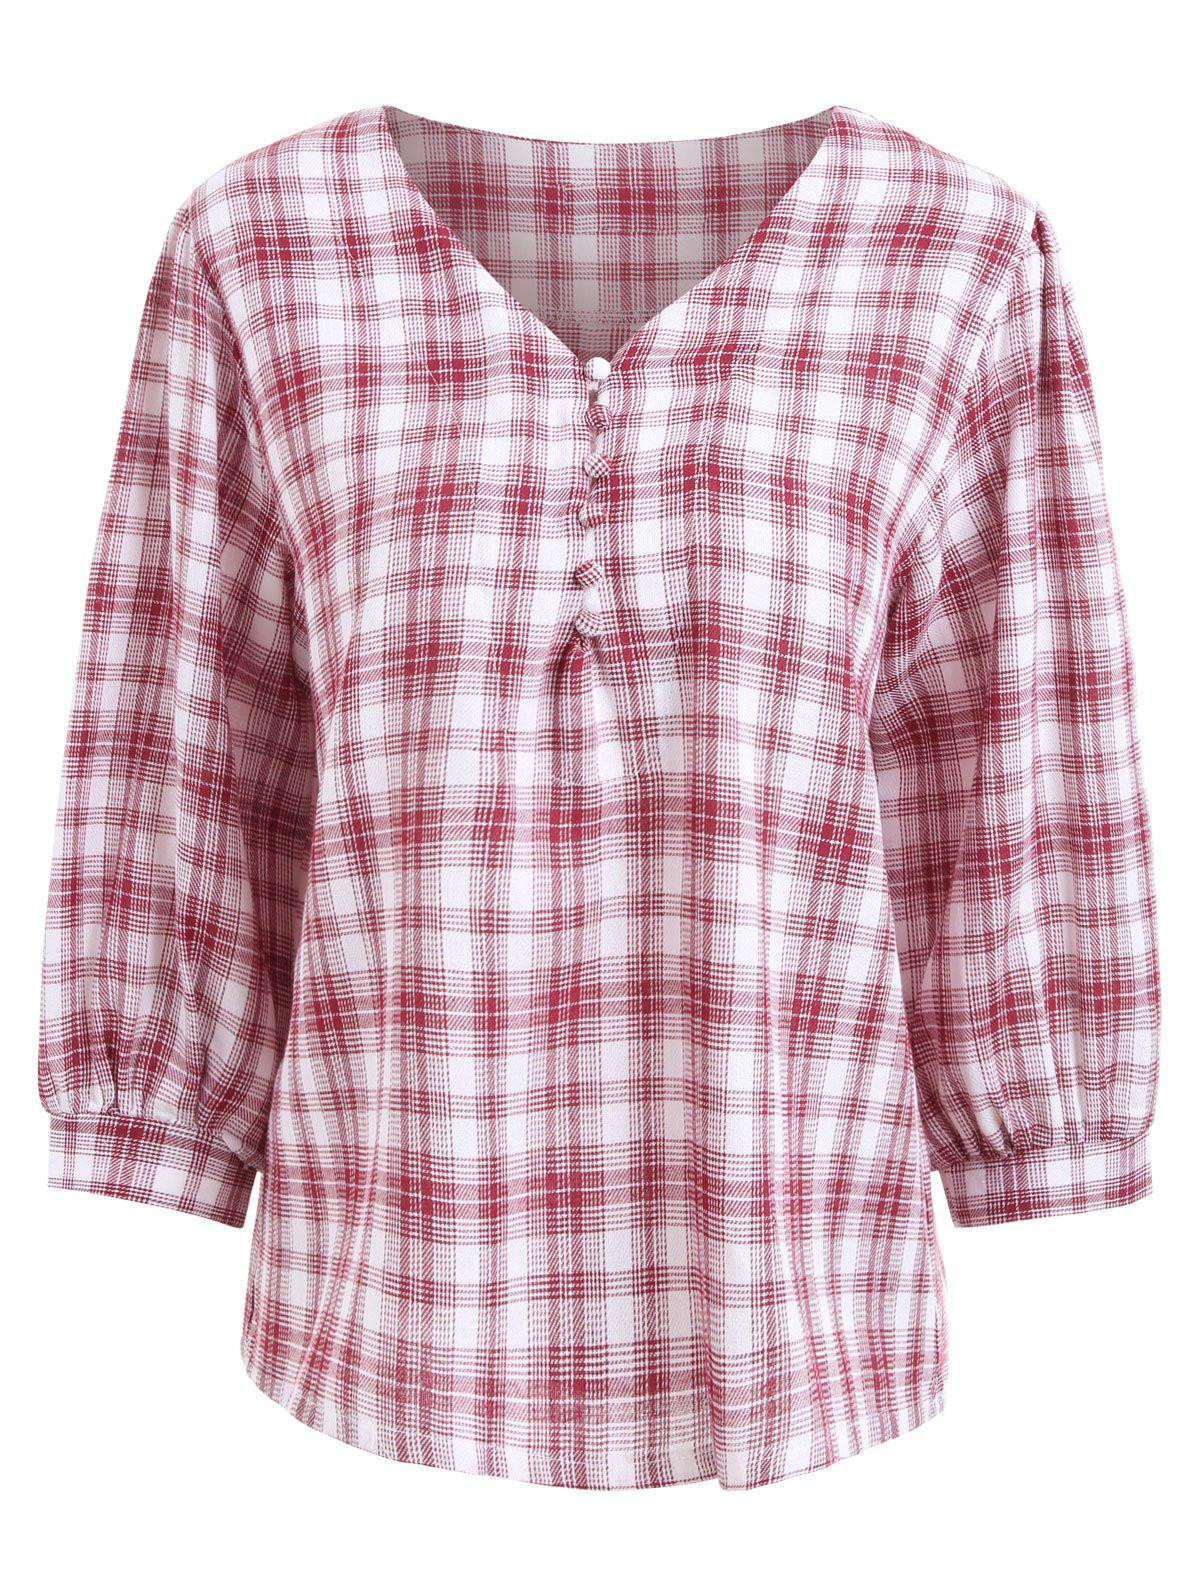 Plus Size V Neck Plaid BlouseWOMEN<br><br>Size: 4XL; Color: RED; Material: Cotton,Polyester; Shirt Length: Regular; Sleeve Length: Three Quarter; Collar: V-Neck; Style: Fashion; Season: Fall; Embellishment: Button; Pattern Type: Plaid; Weight: 0.2450kg; Package Contents: 1 x Blouse;